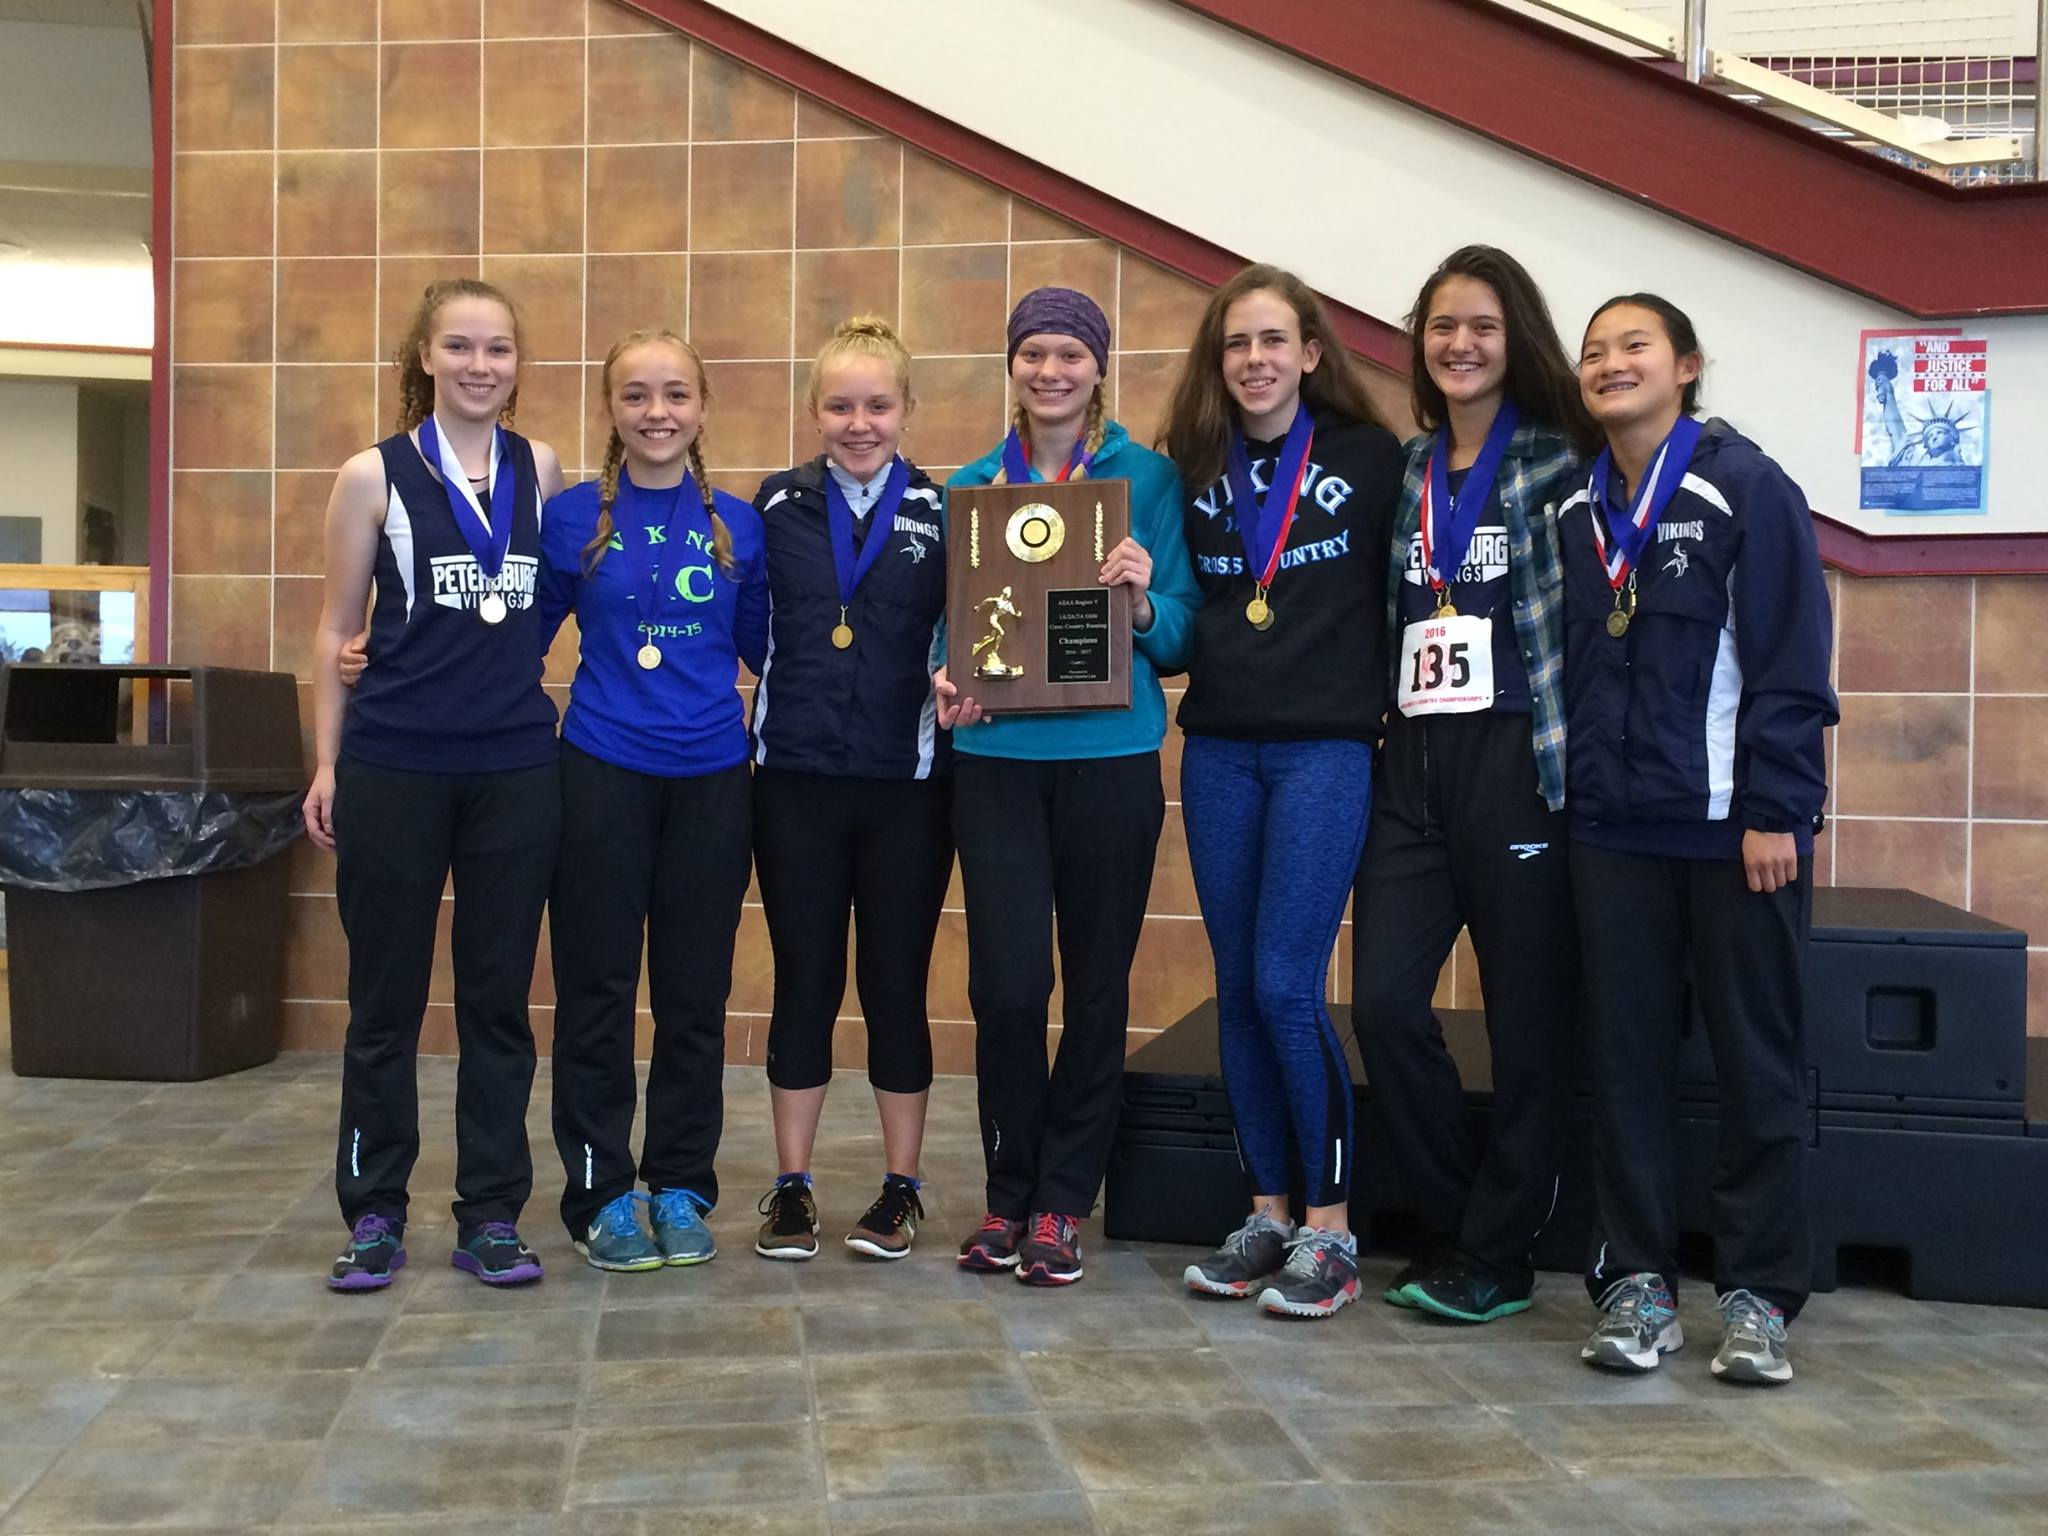 The region champ PHS cross country team from left, Shlya Cook, Eva Lenhard, Meghyn Parker, Kayliegh Eddy, Erin Pfundt, Julia Murph, and Melanie Chase (Photo courtesy of PHS cross country)